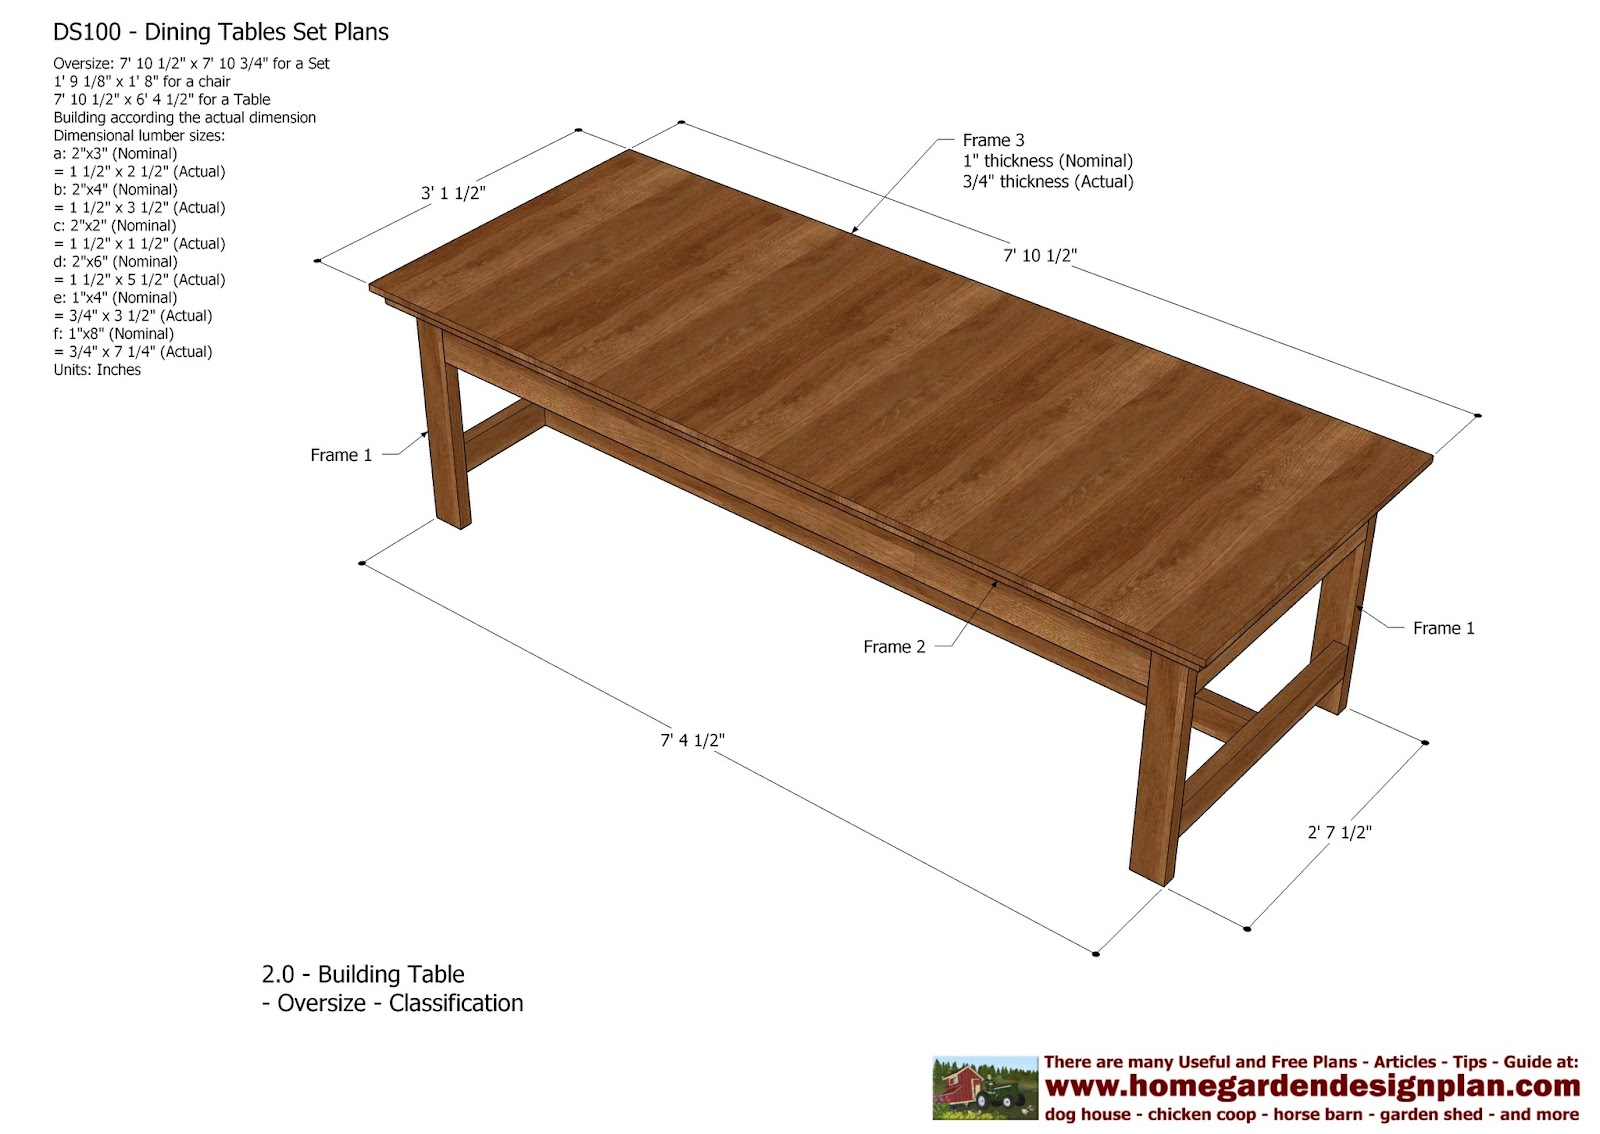 ... have an easy wood desk plans easy wood desk plans easy wood desk plans